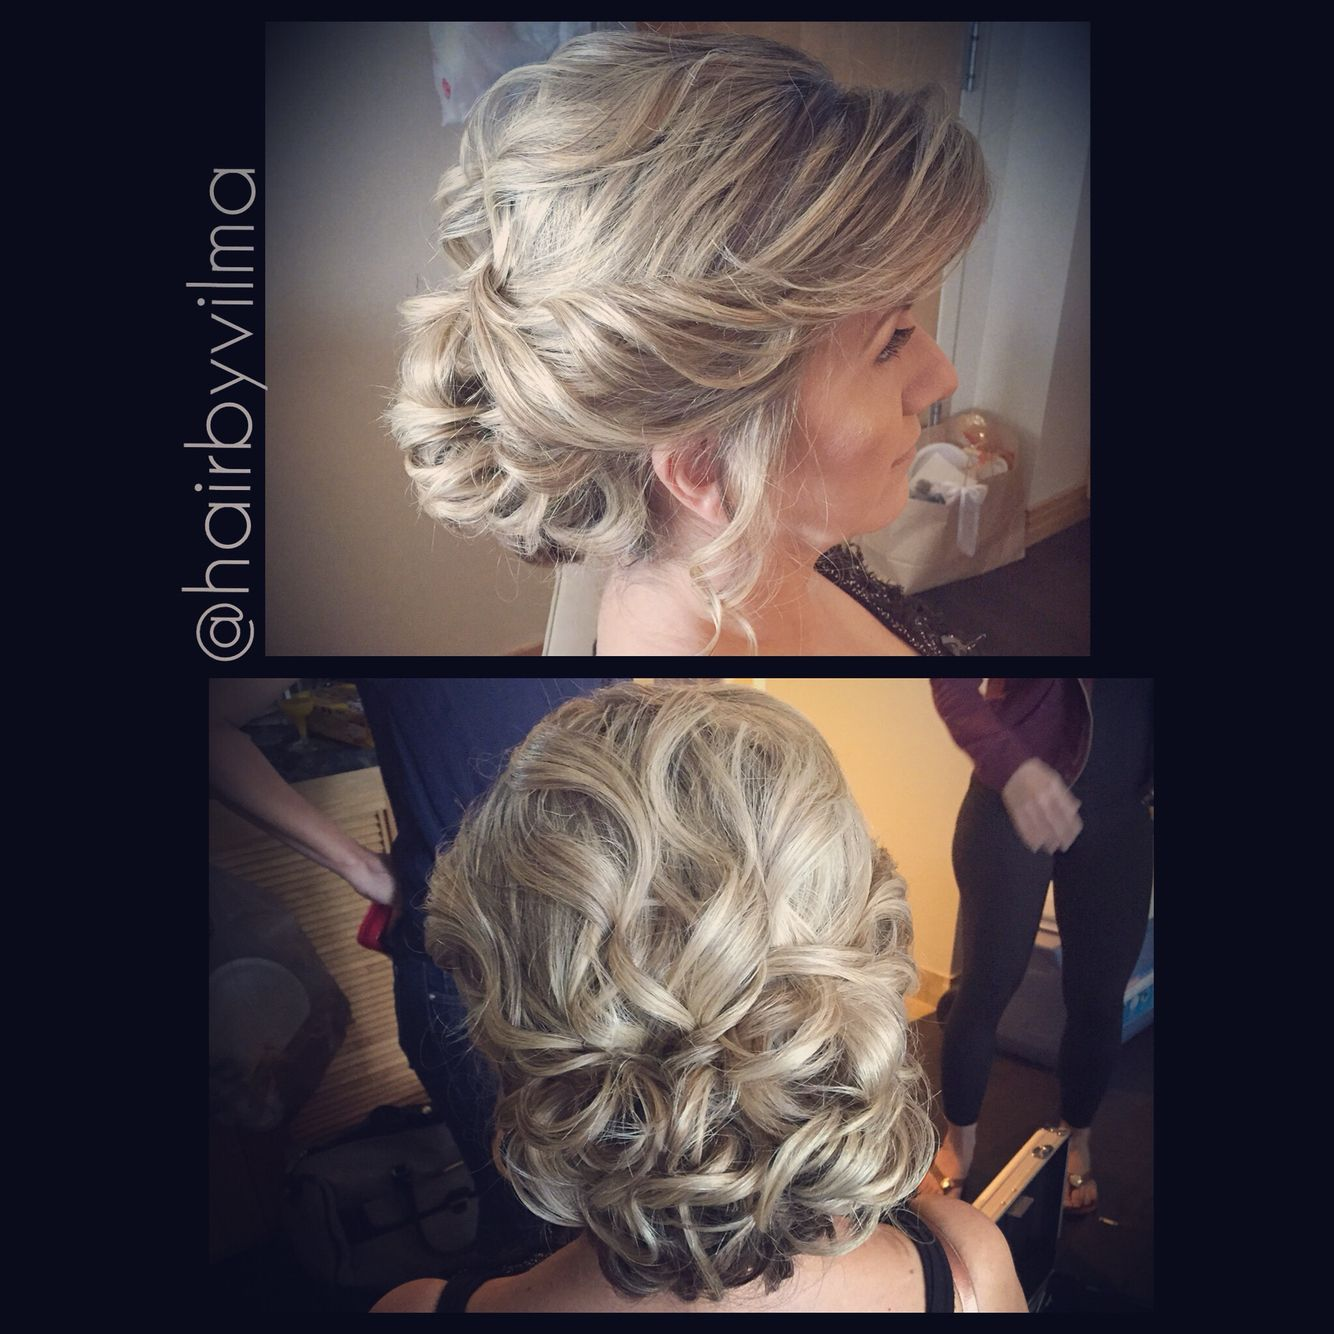 Groom Hairstyles: Mother Of The Groom Hairstyle!